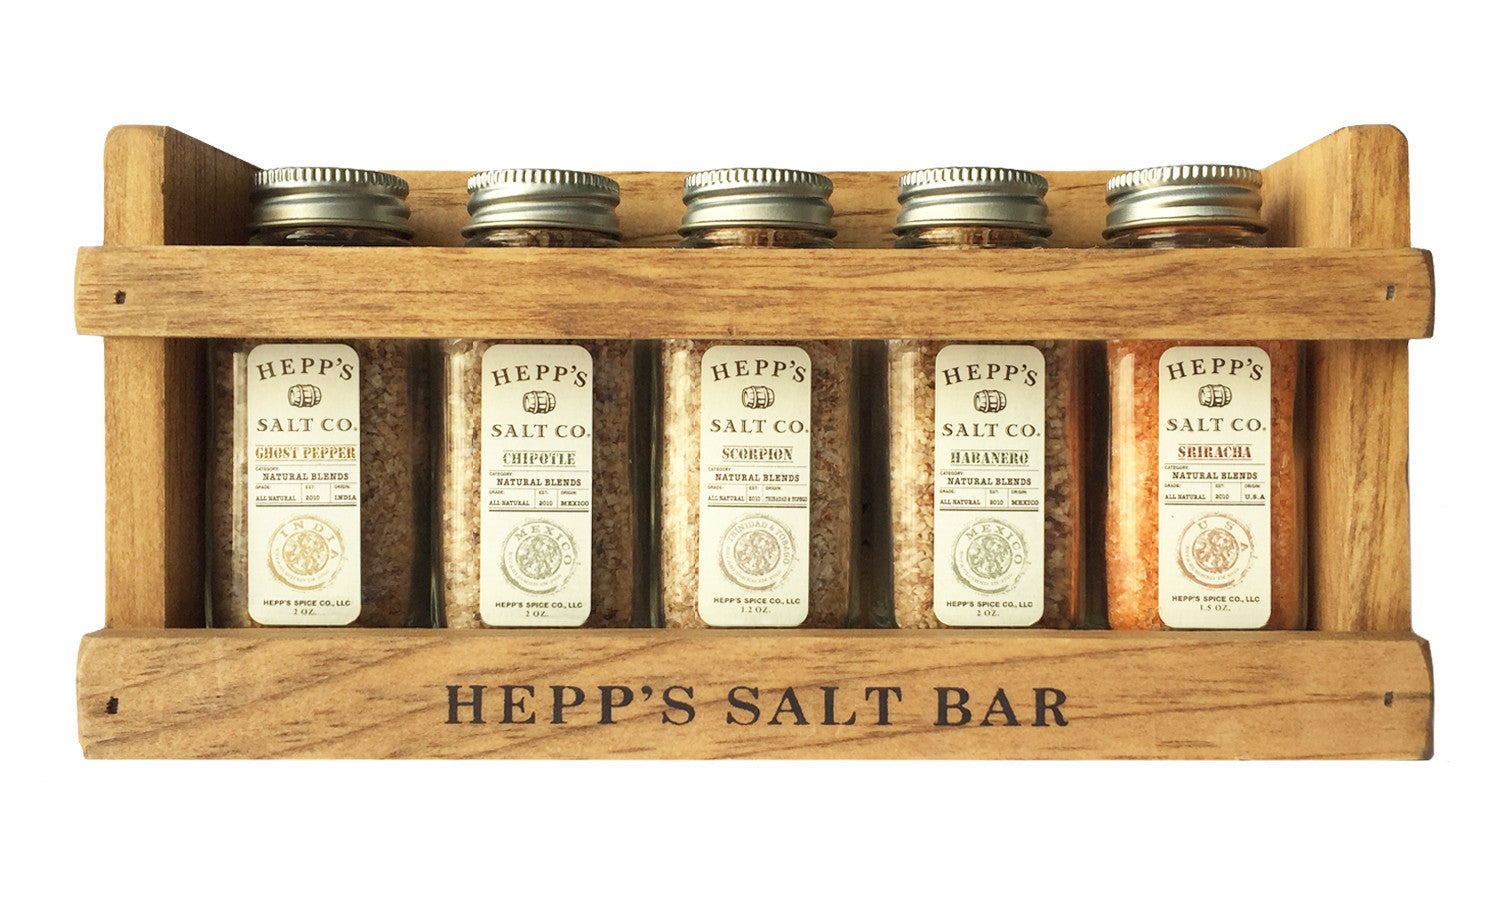 Hot Box Gift Set - HEPPS SALT CO.